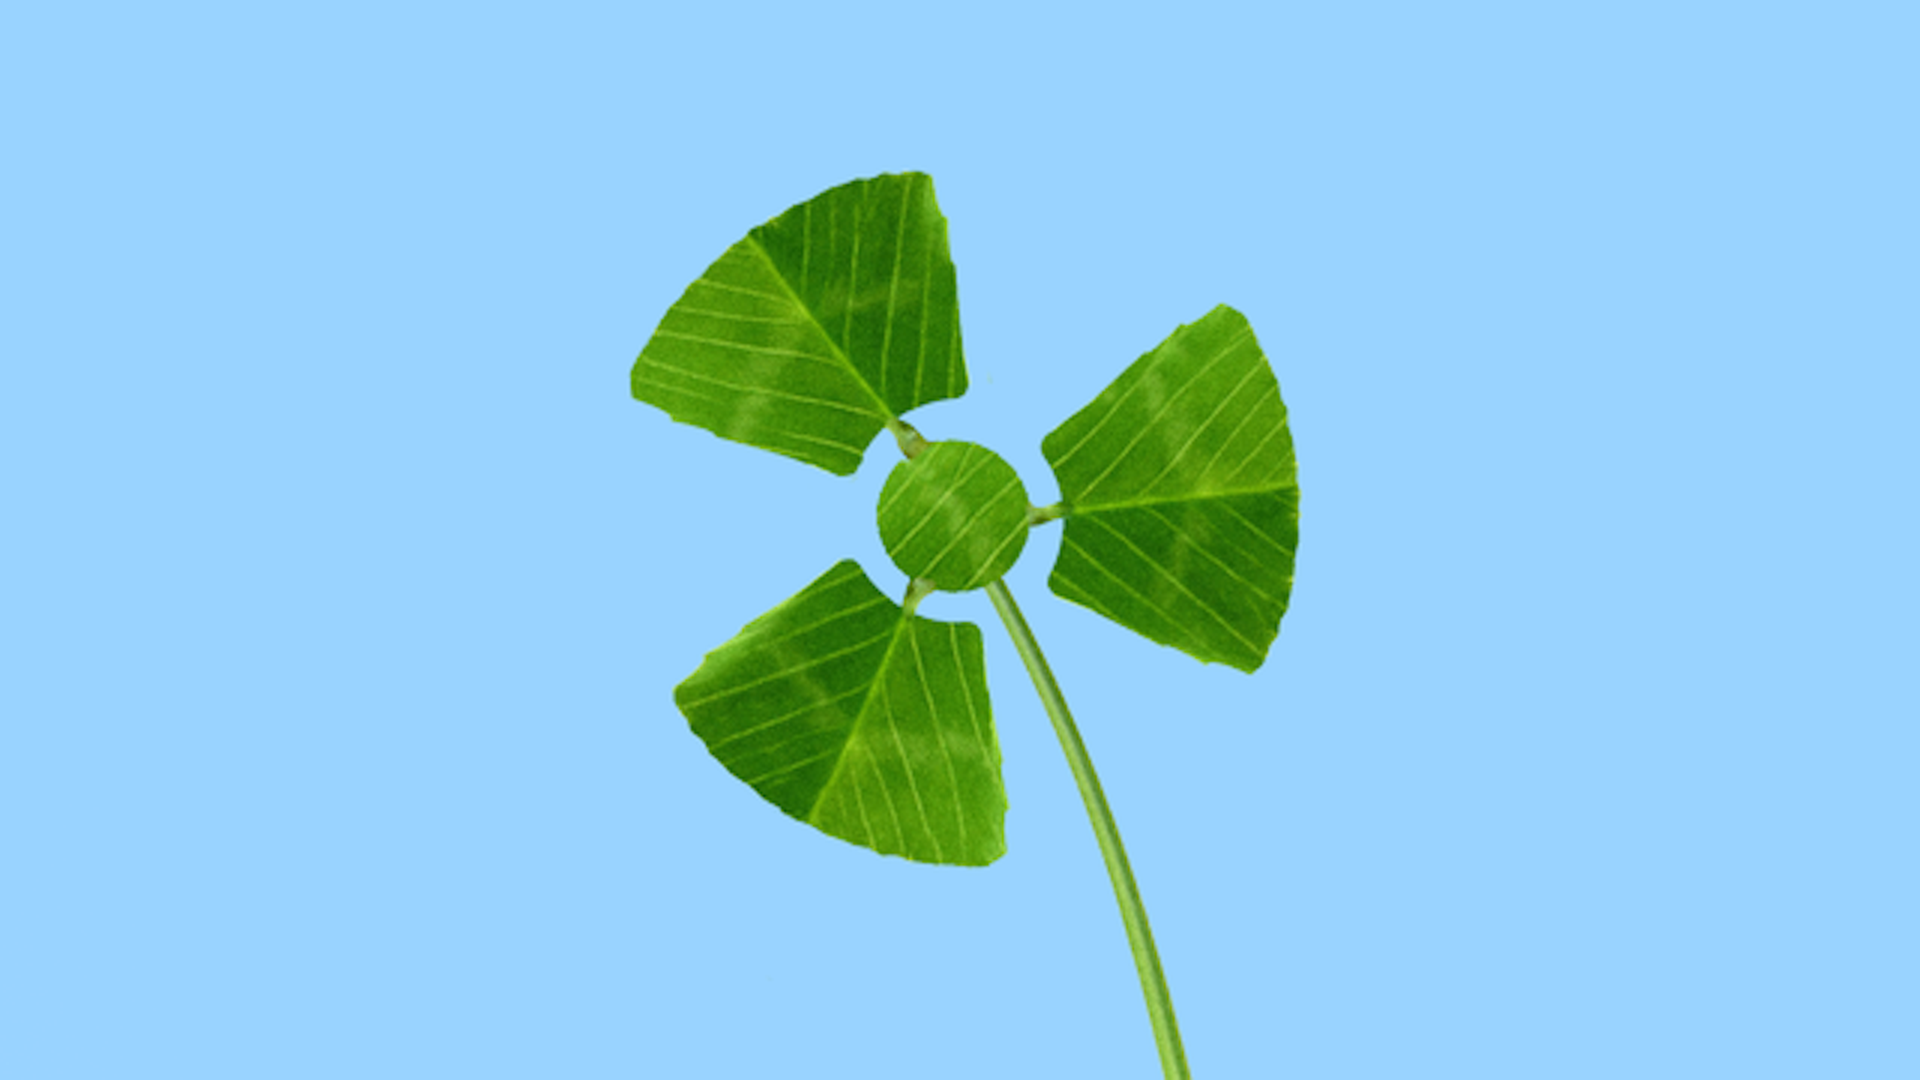 Illustration of a nuclear power symbol made from green leaves